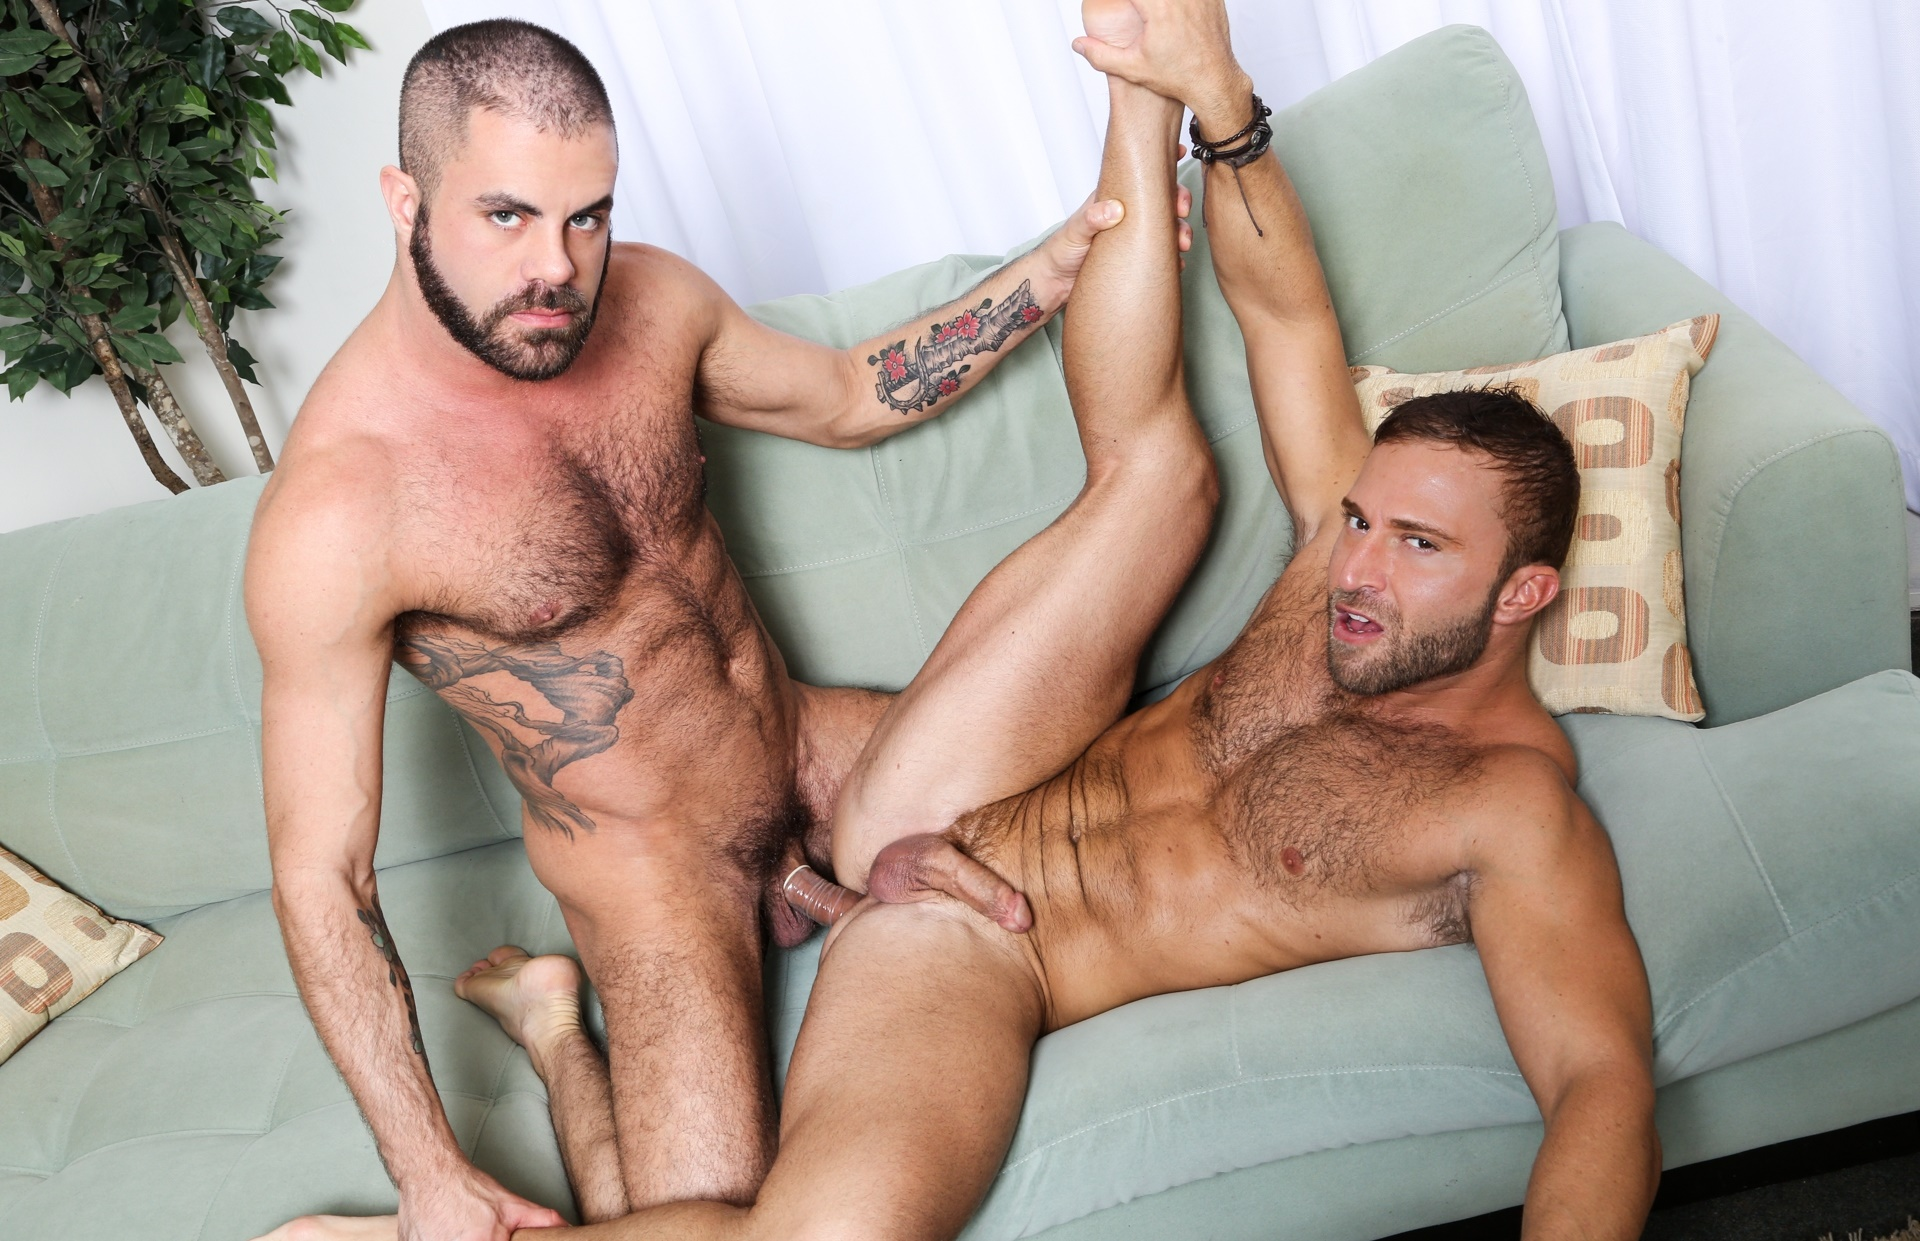 gaystips Gay centralniceapartment.com